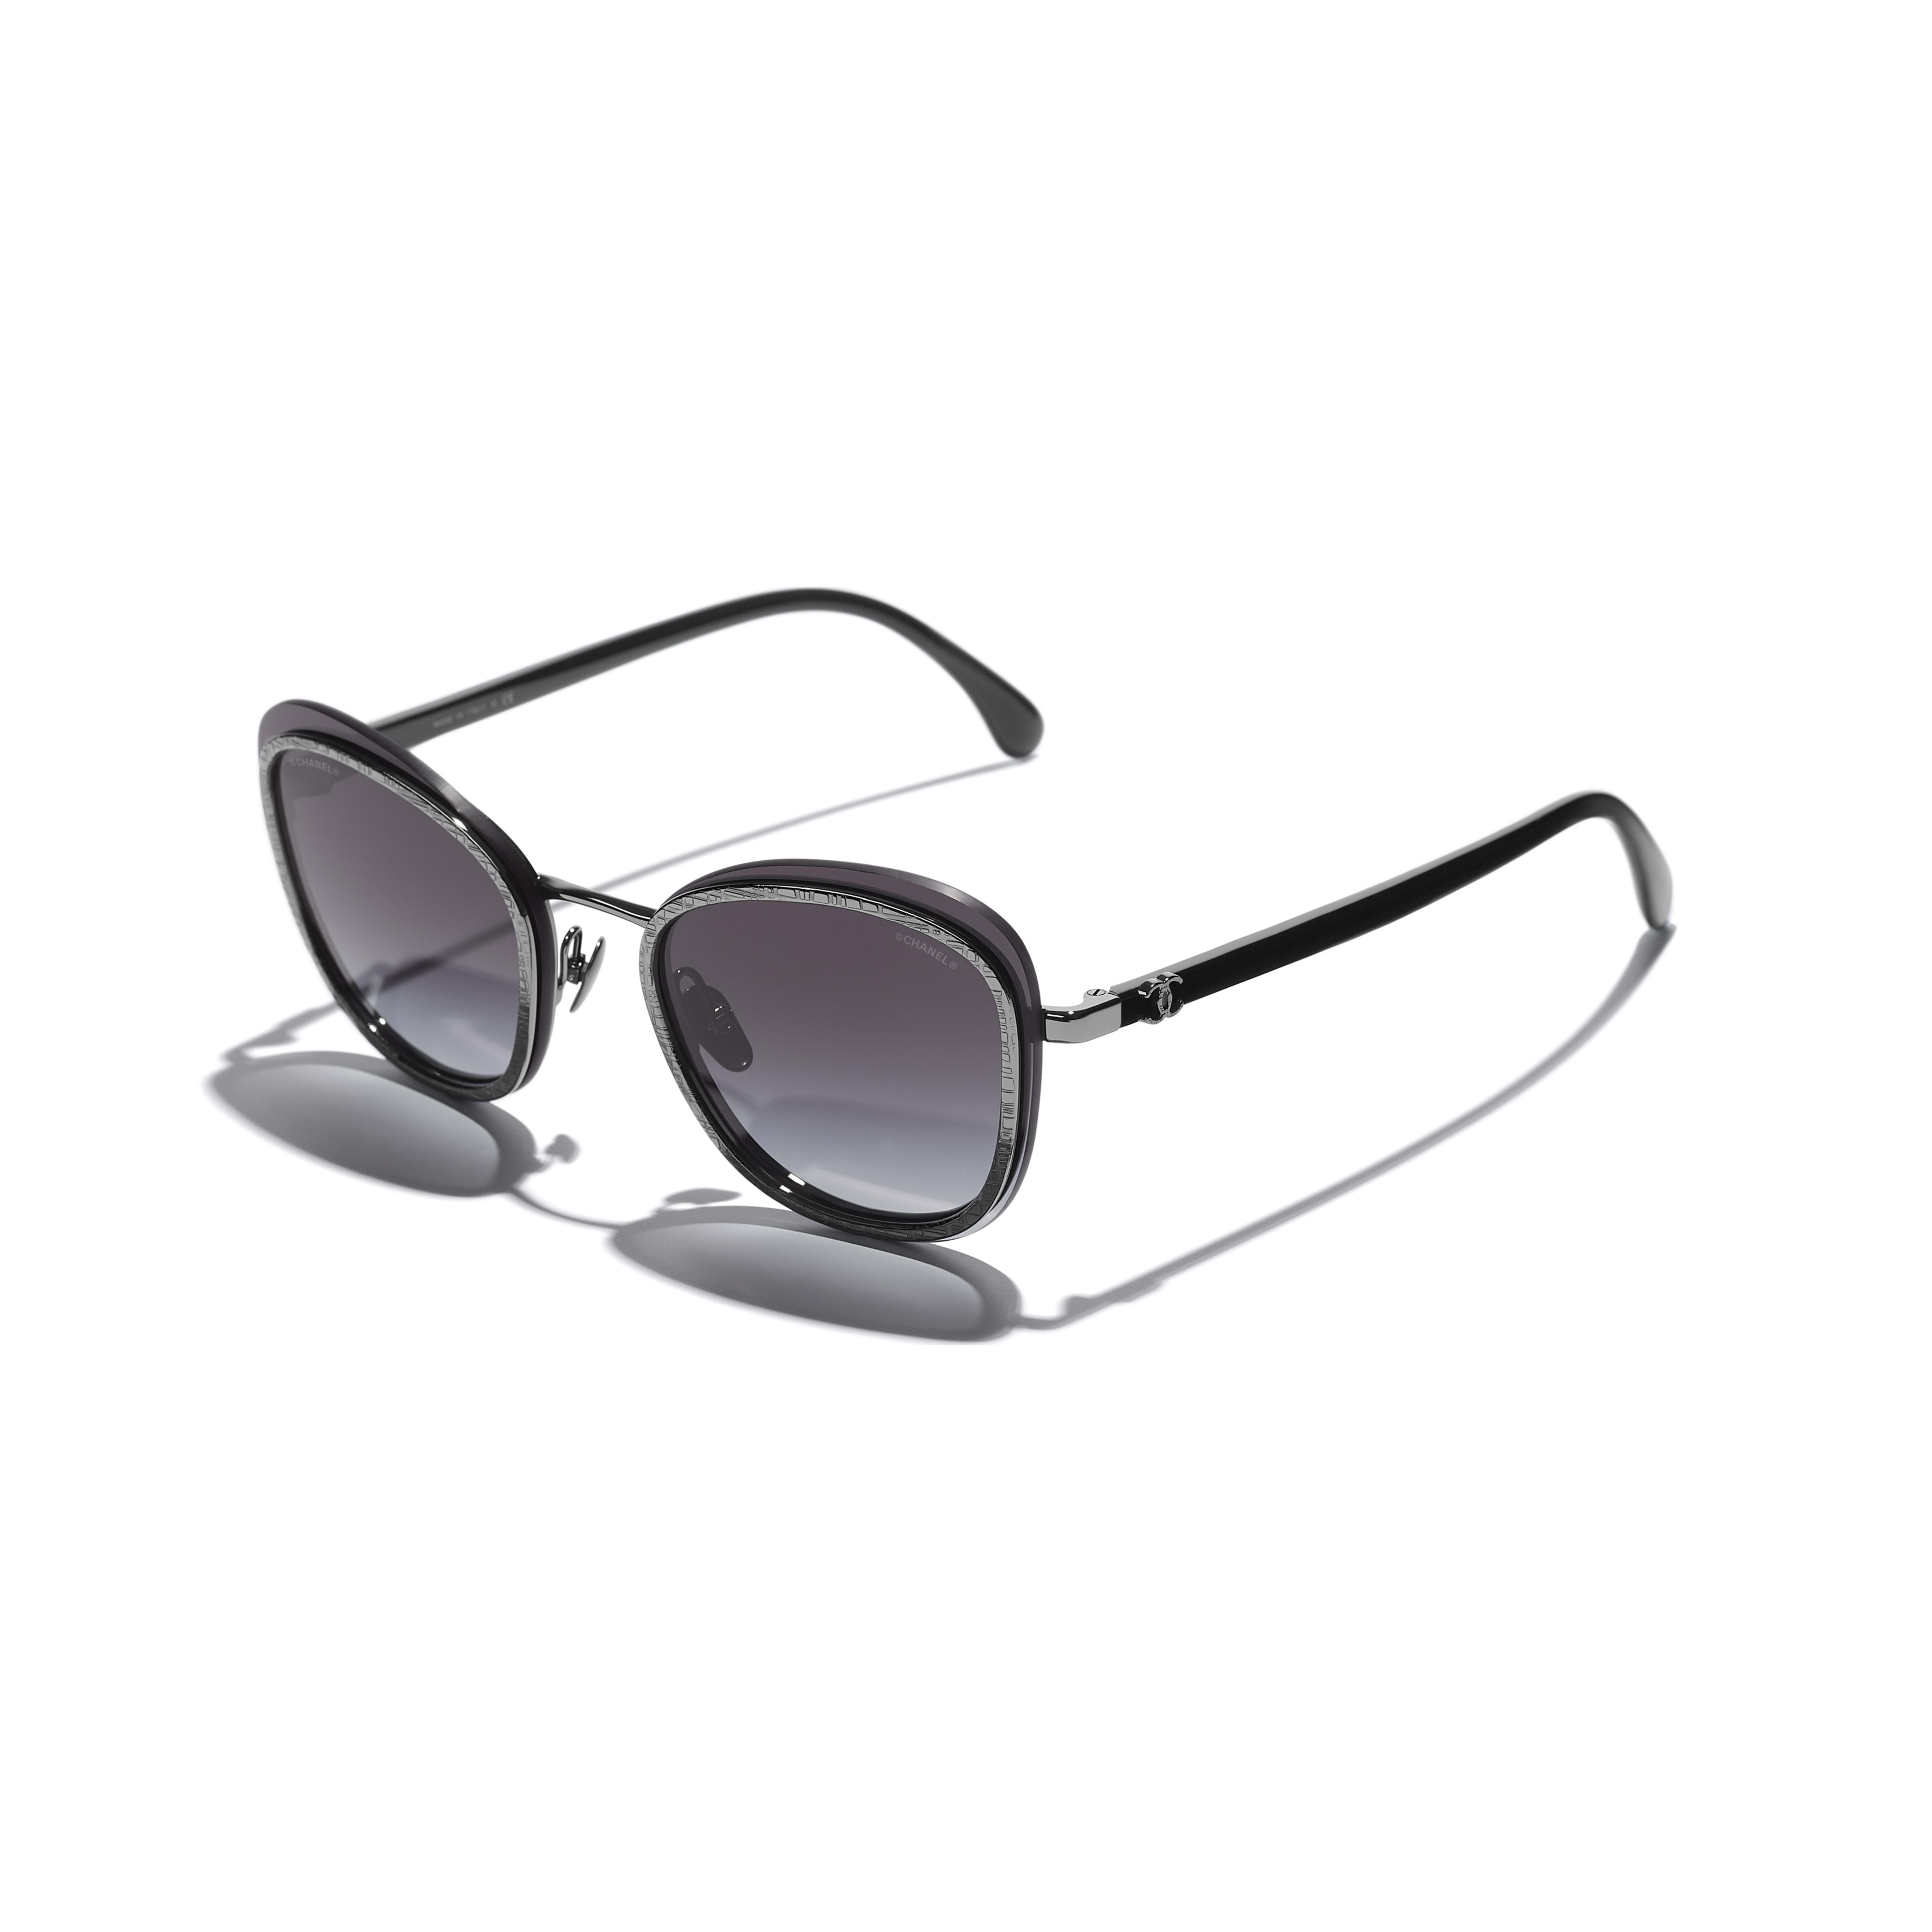 Pantos Sunglasses - Silver - Acetate & Metal - CHANEL - Extra view - see standard sized version